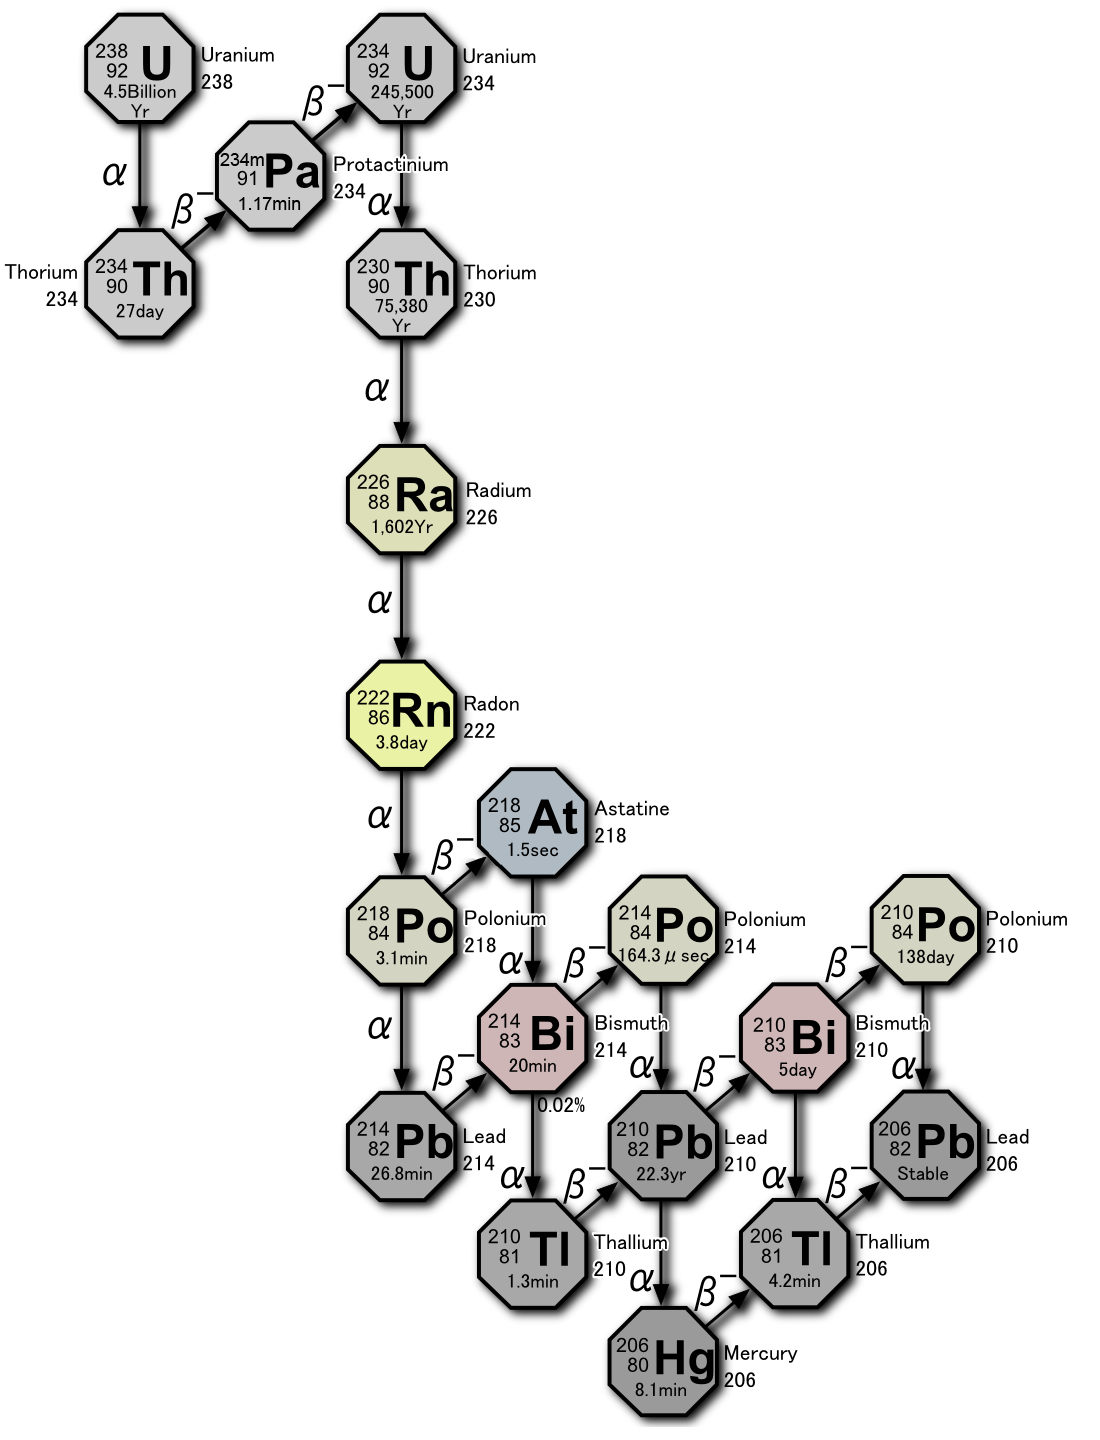 File:Decay chain(4n+2, Uranium series).PNG - Wikimedia Commons